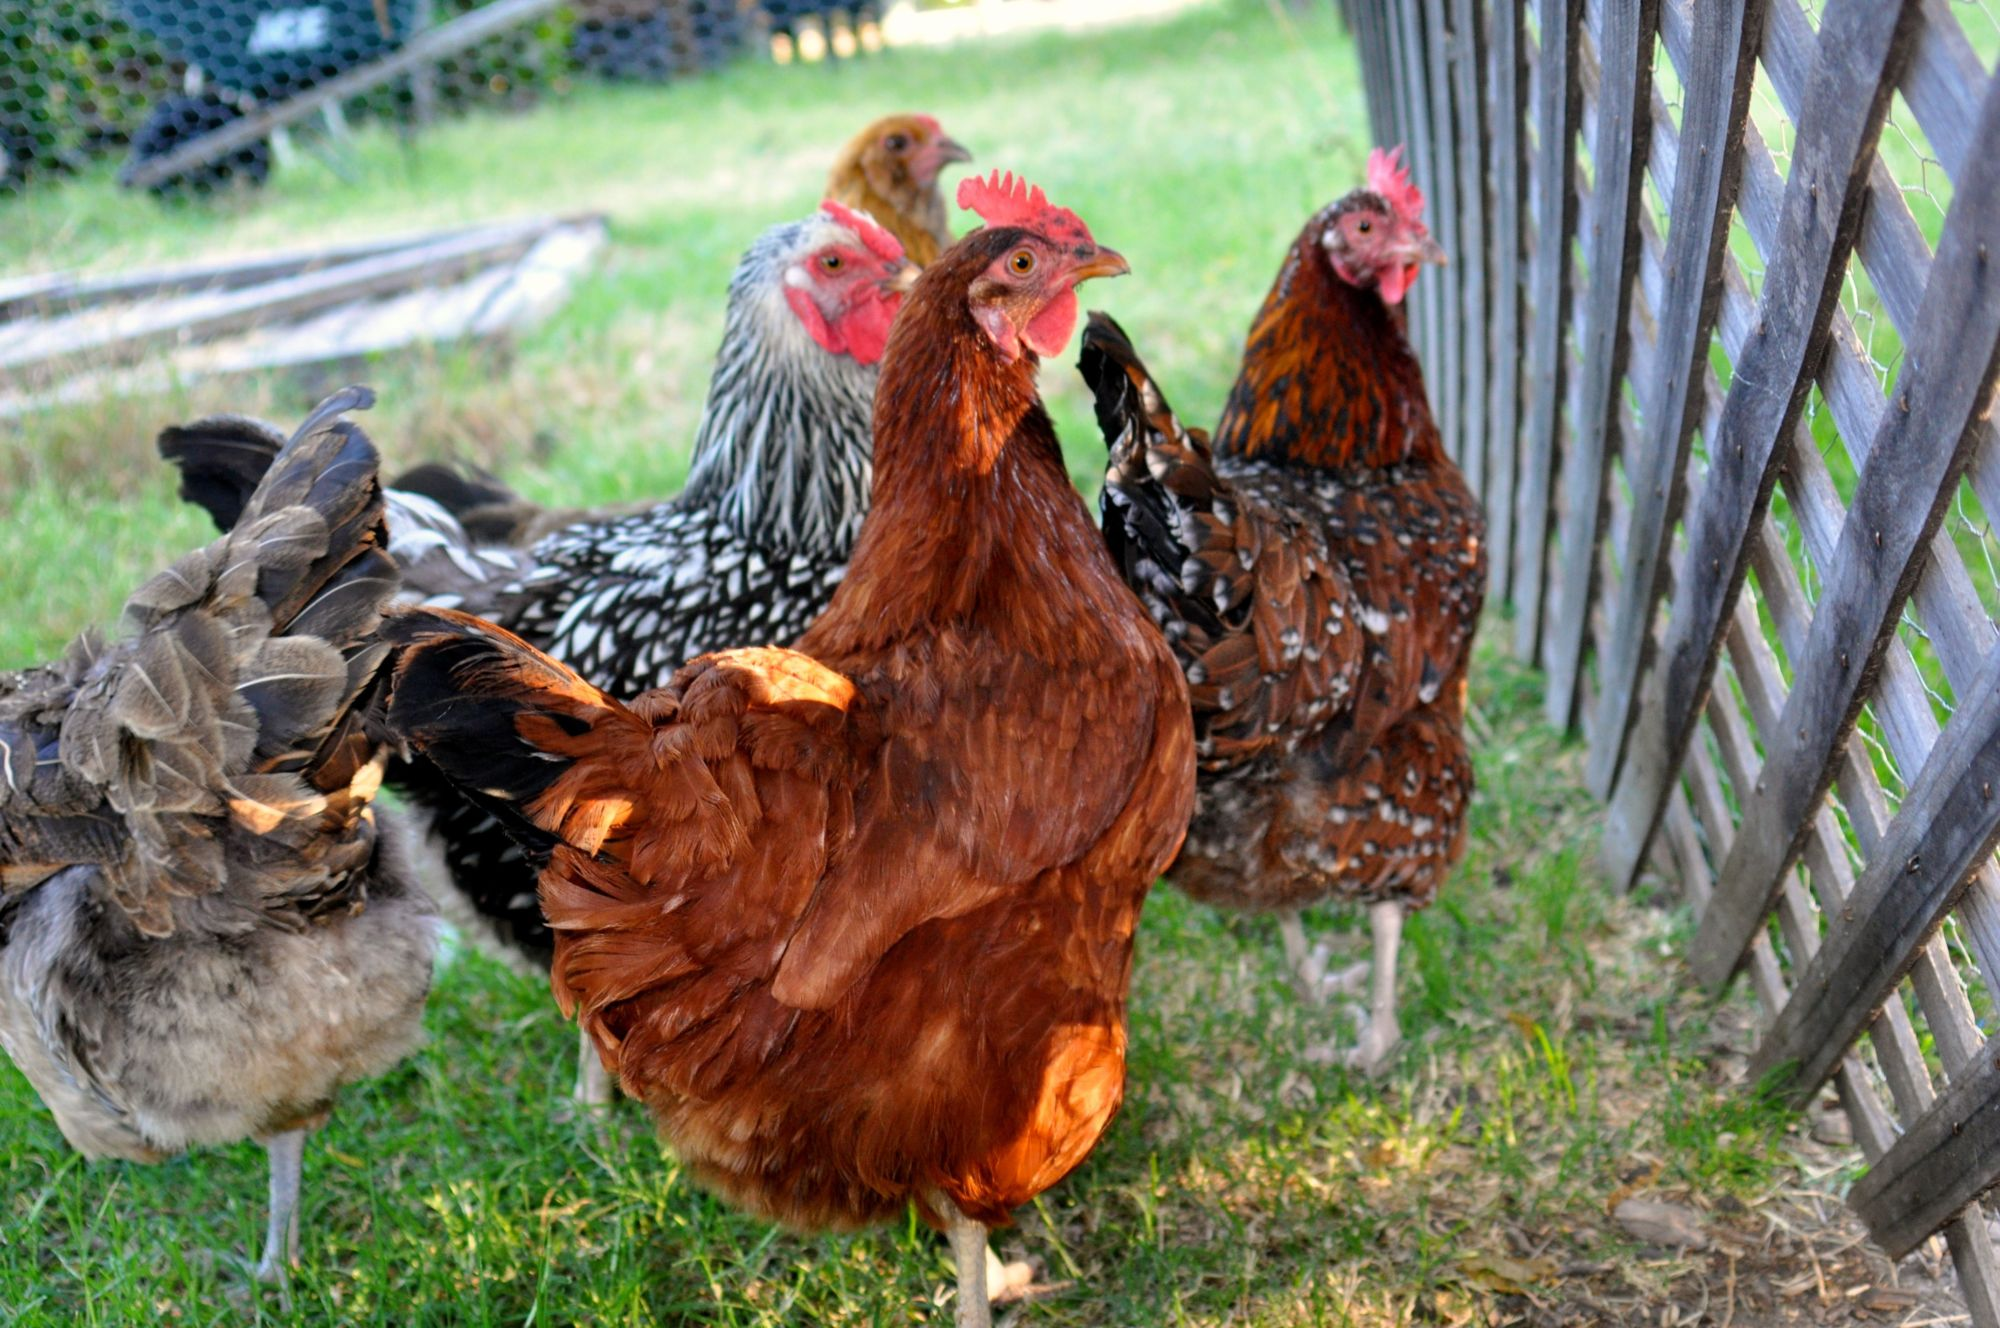 poultry types living together in one coop backyard chickens